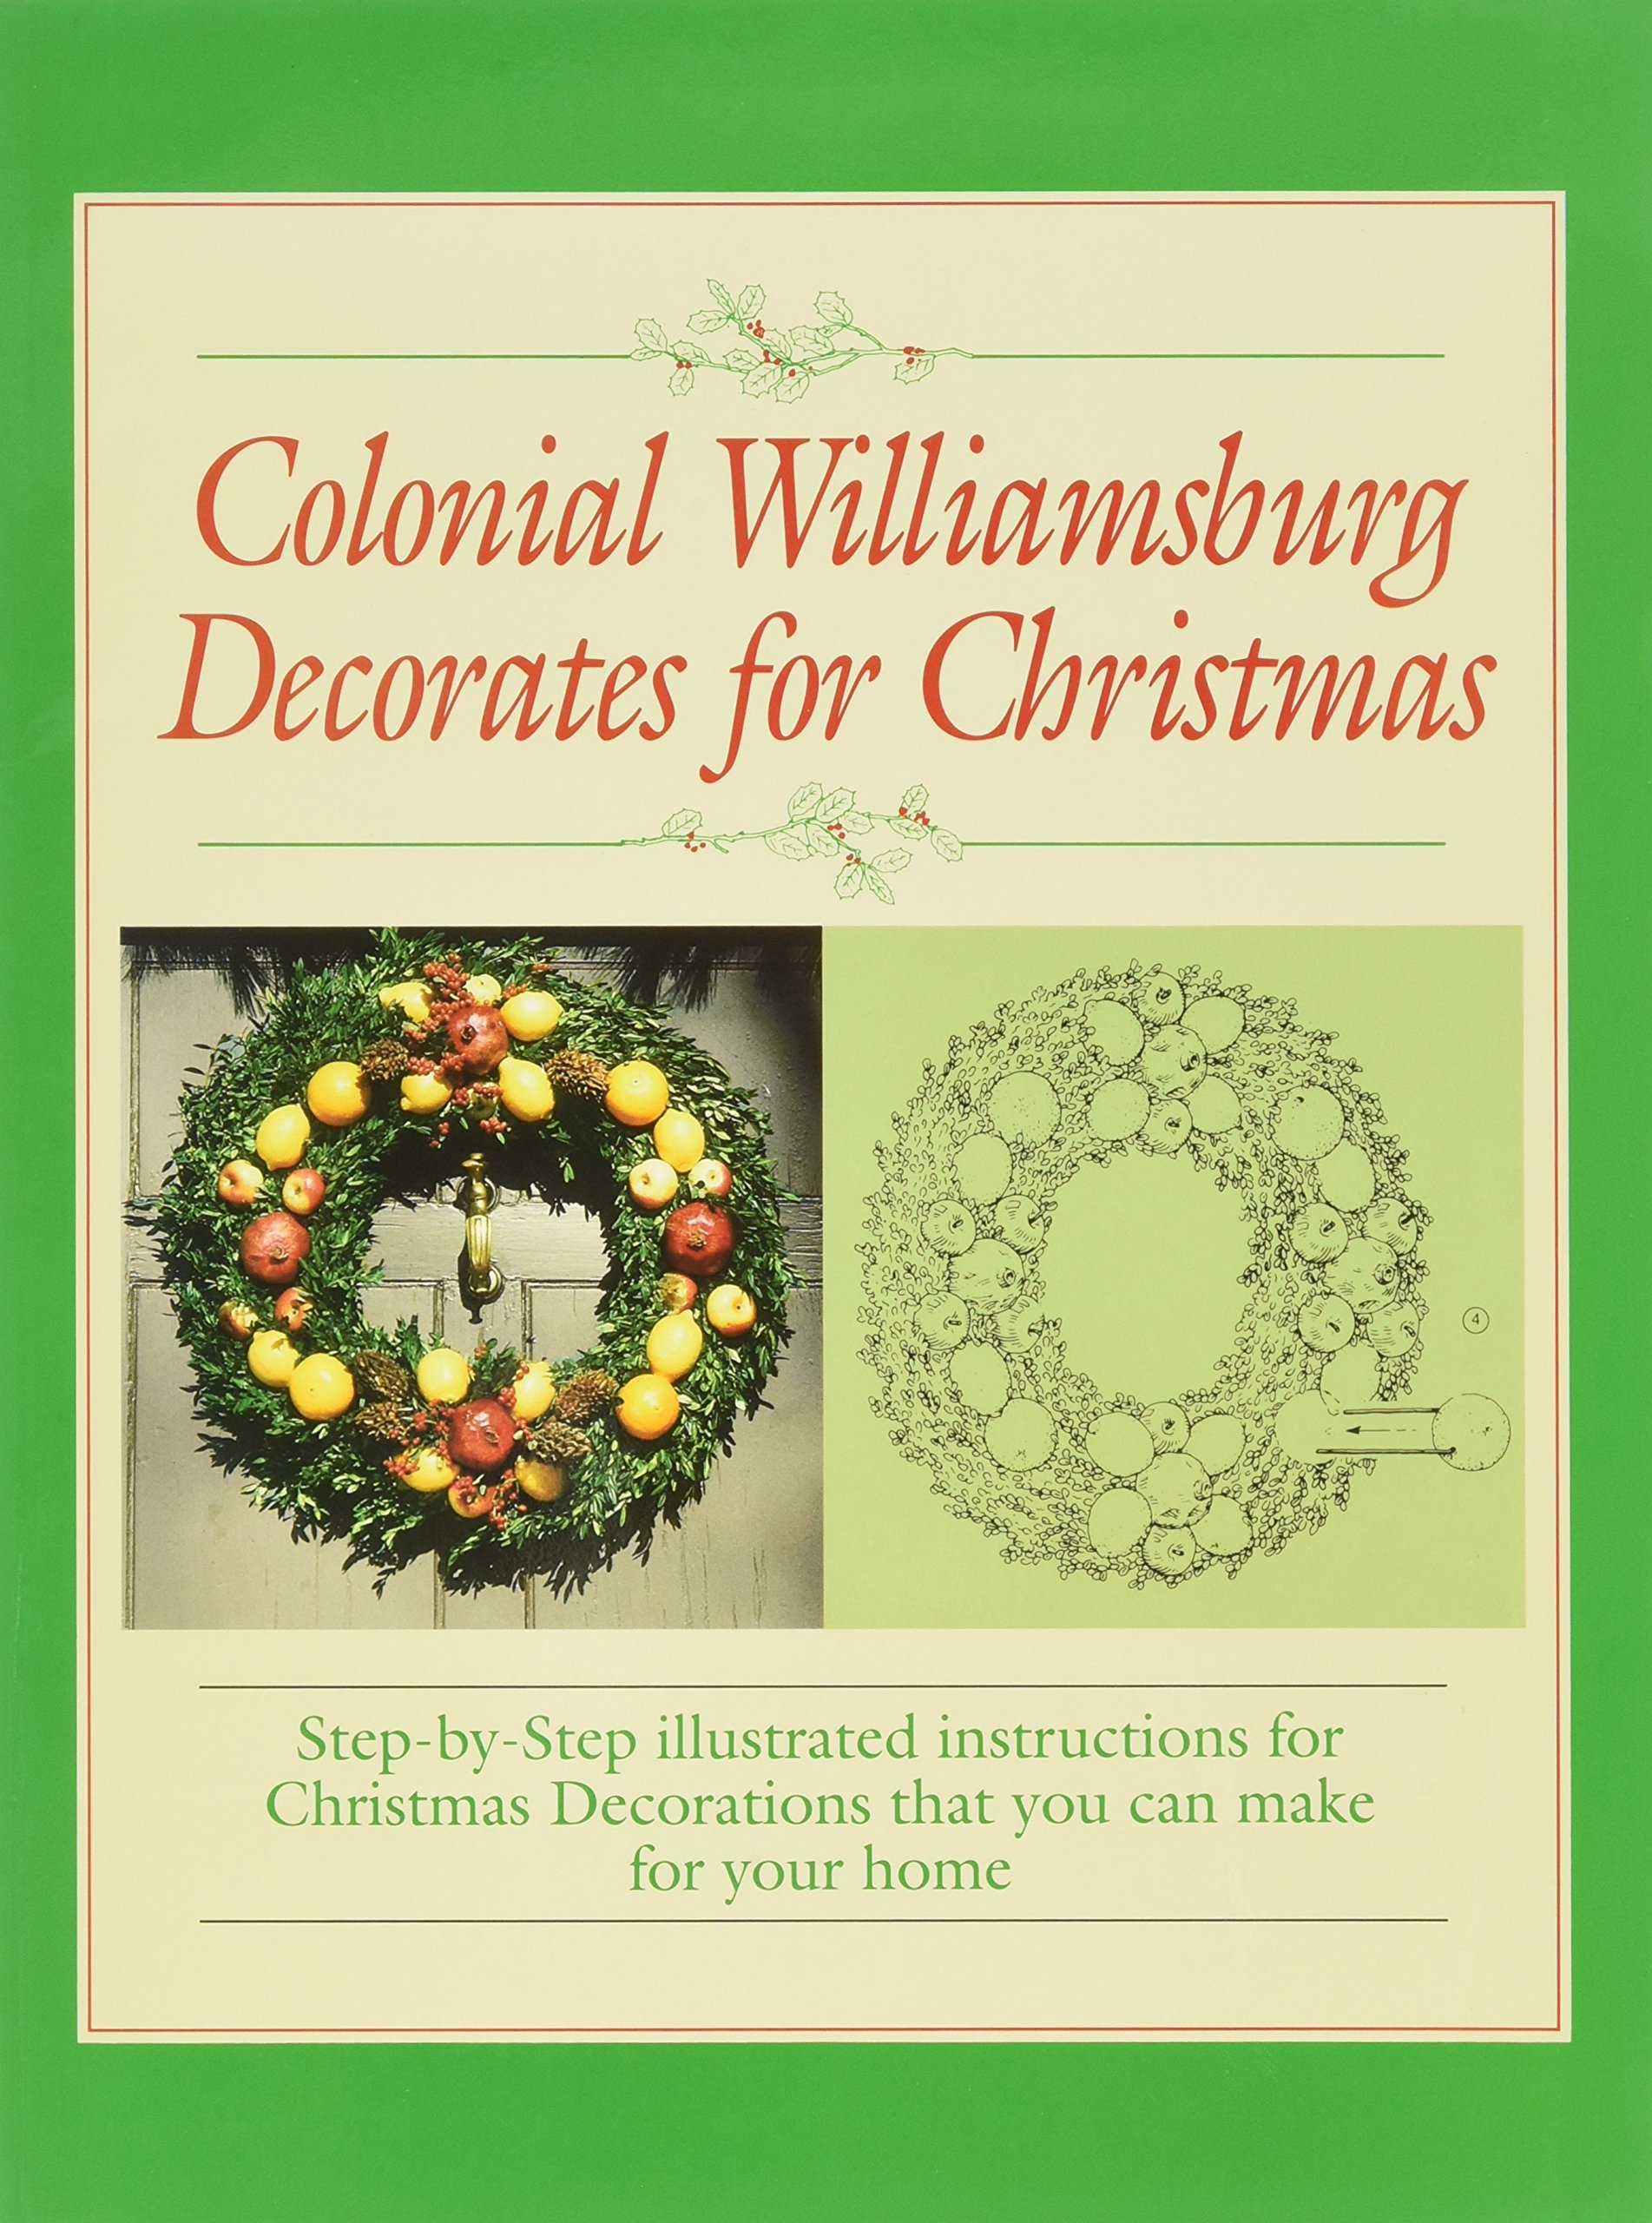 colonial williamsburg decorates for christmas step by step illustrated instructions for christmas decorations that you can make for your home libby h